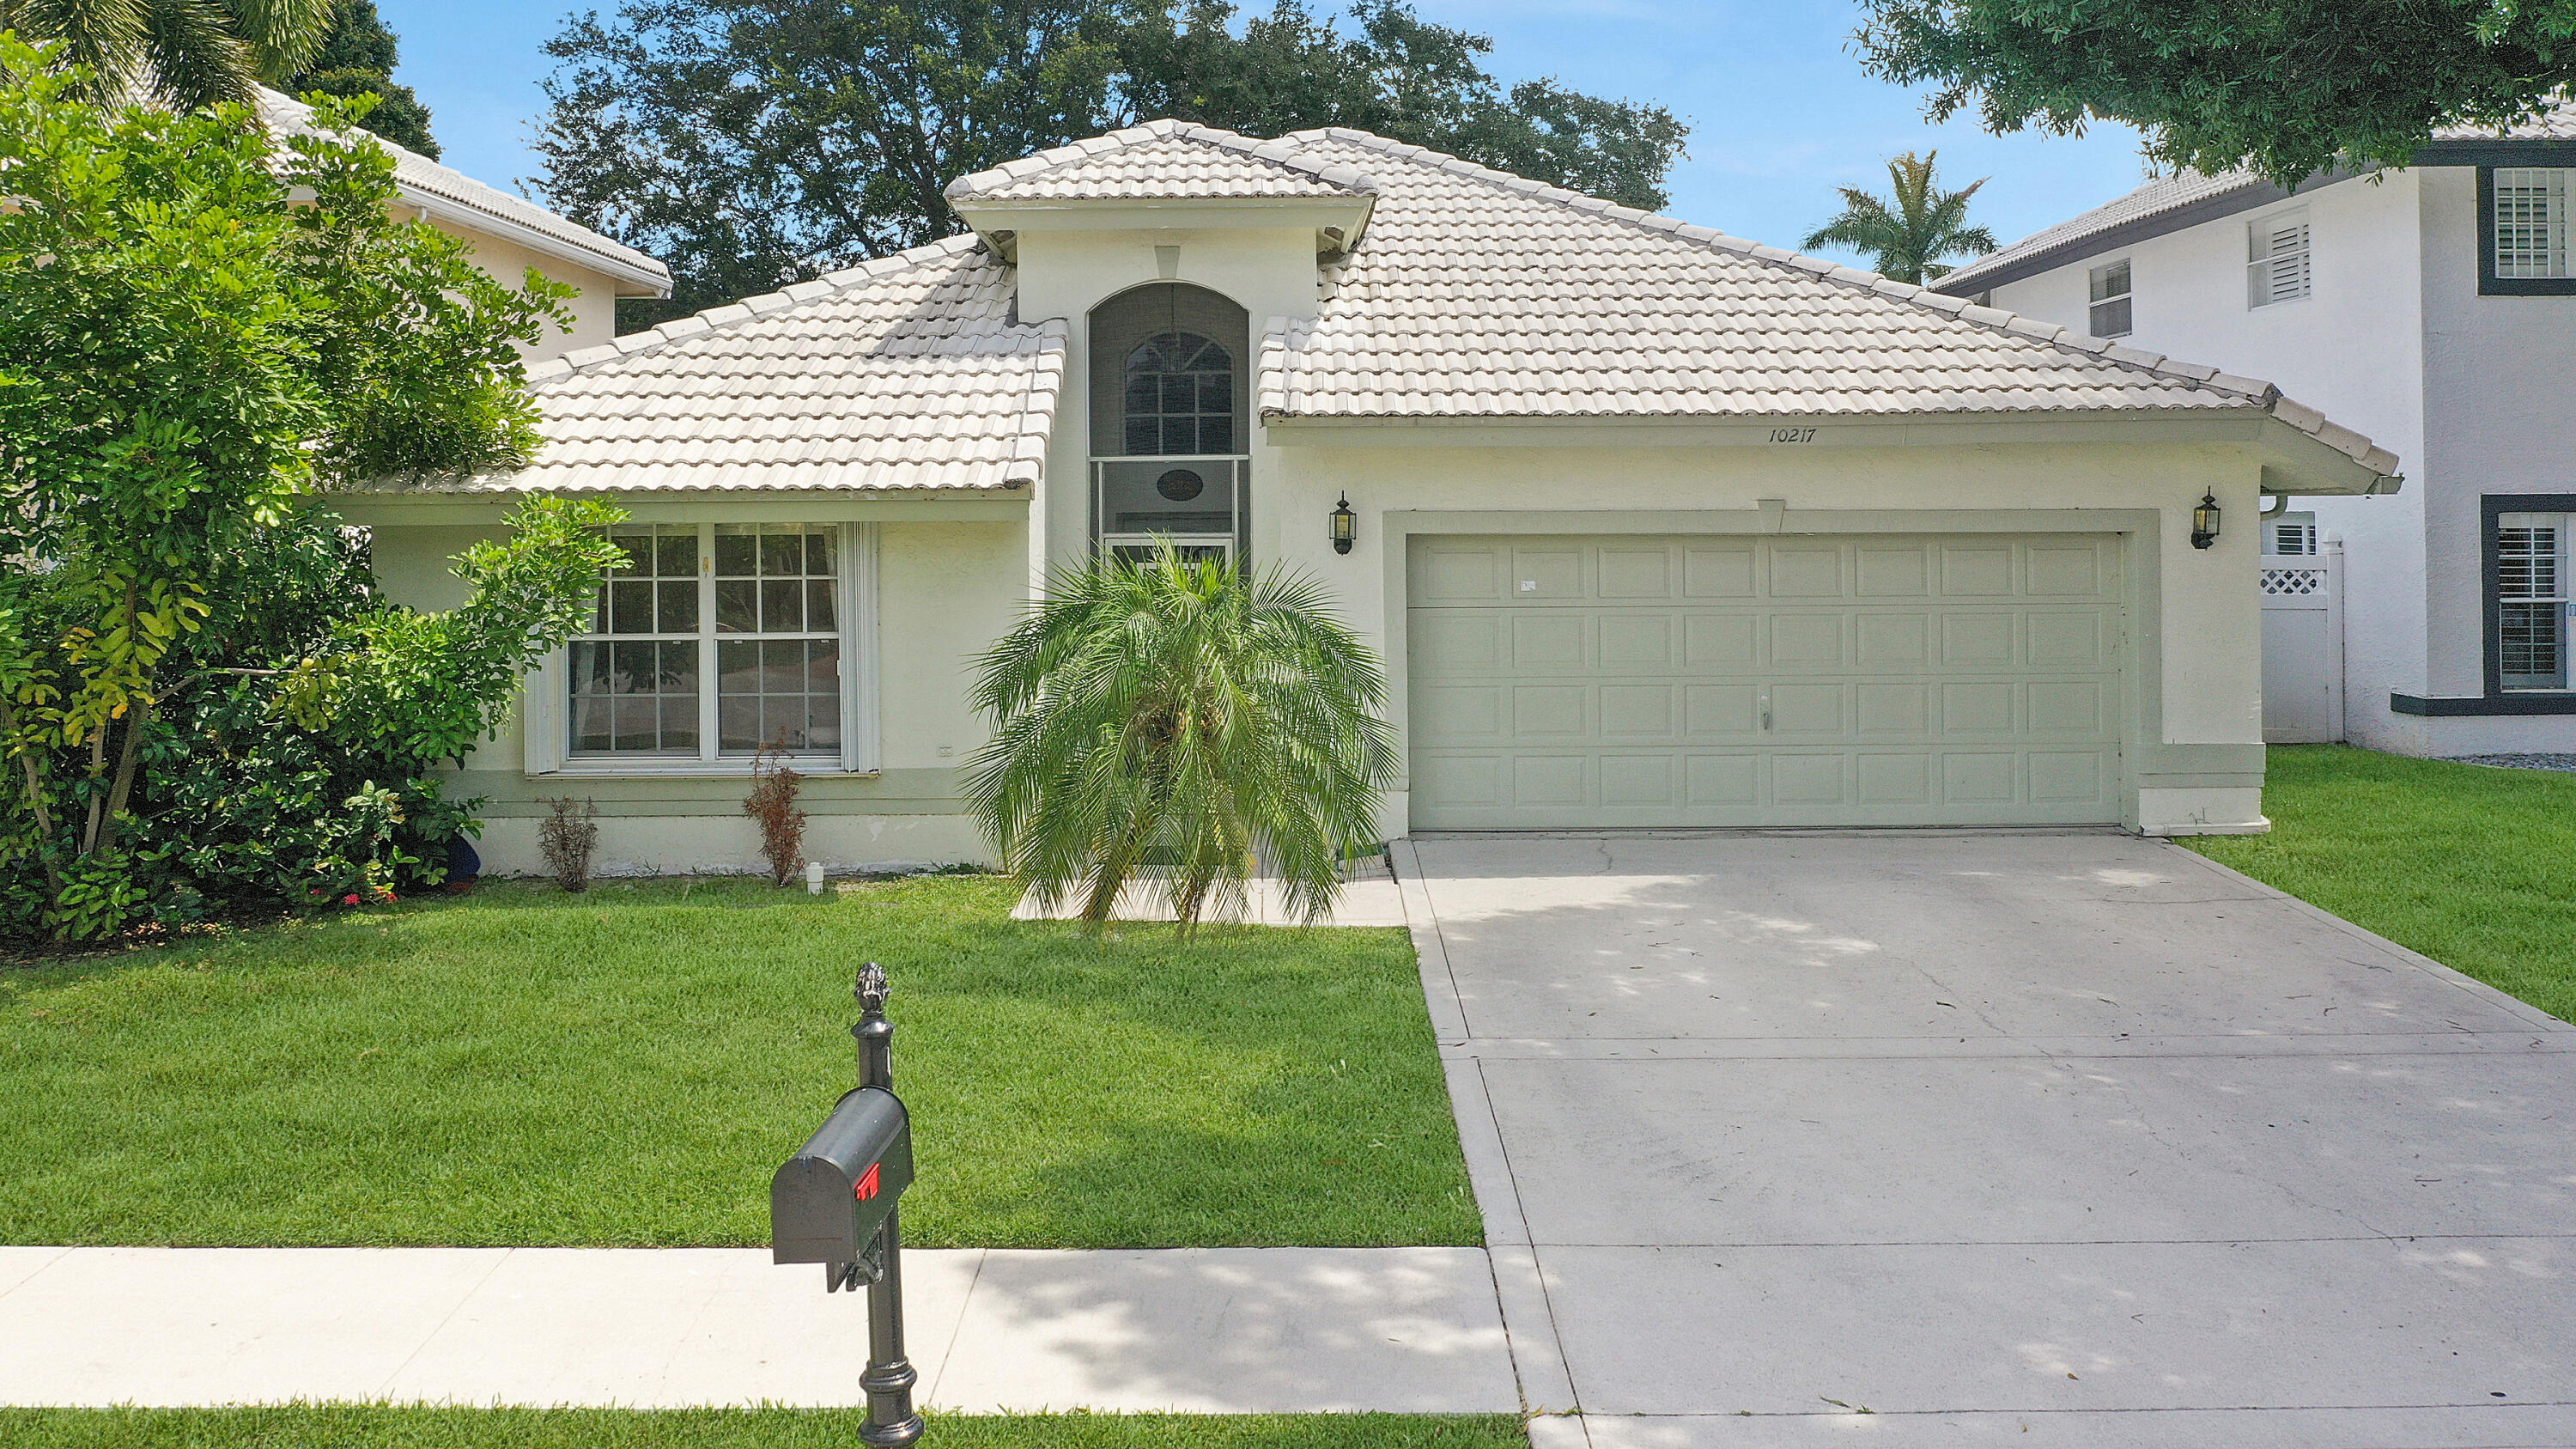 Home for sale in Meadow Lakes Boca Raton Florida